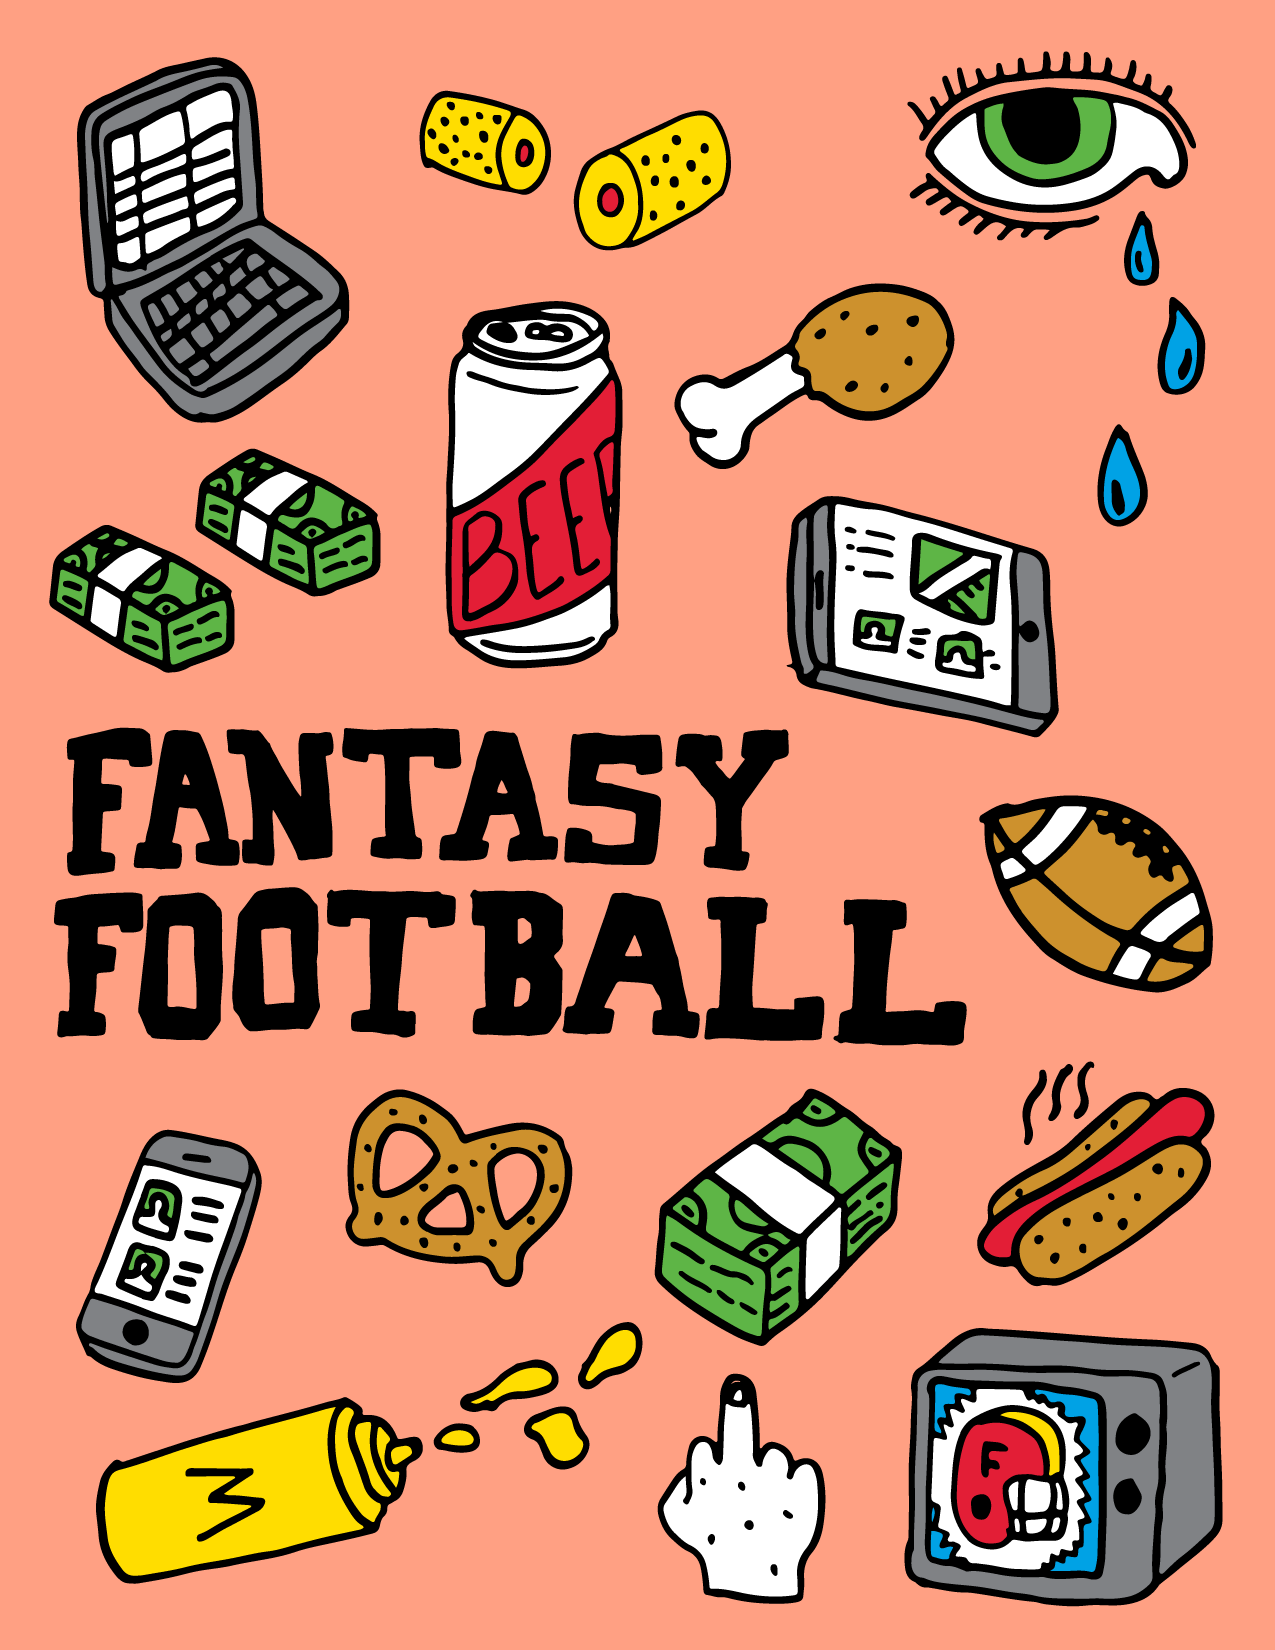 Fantasy Football Illustration Poster